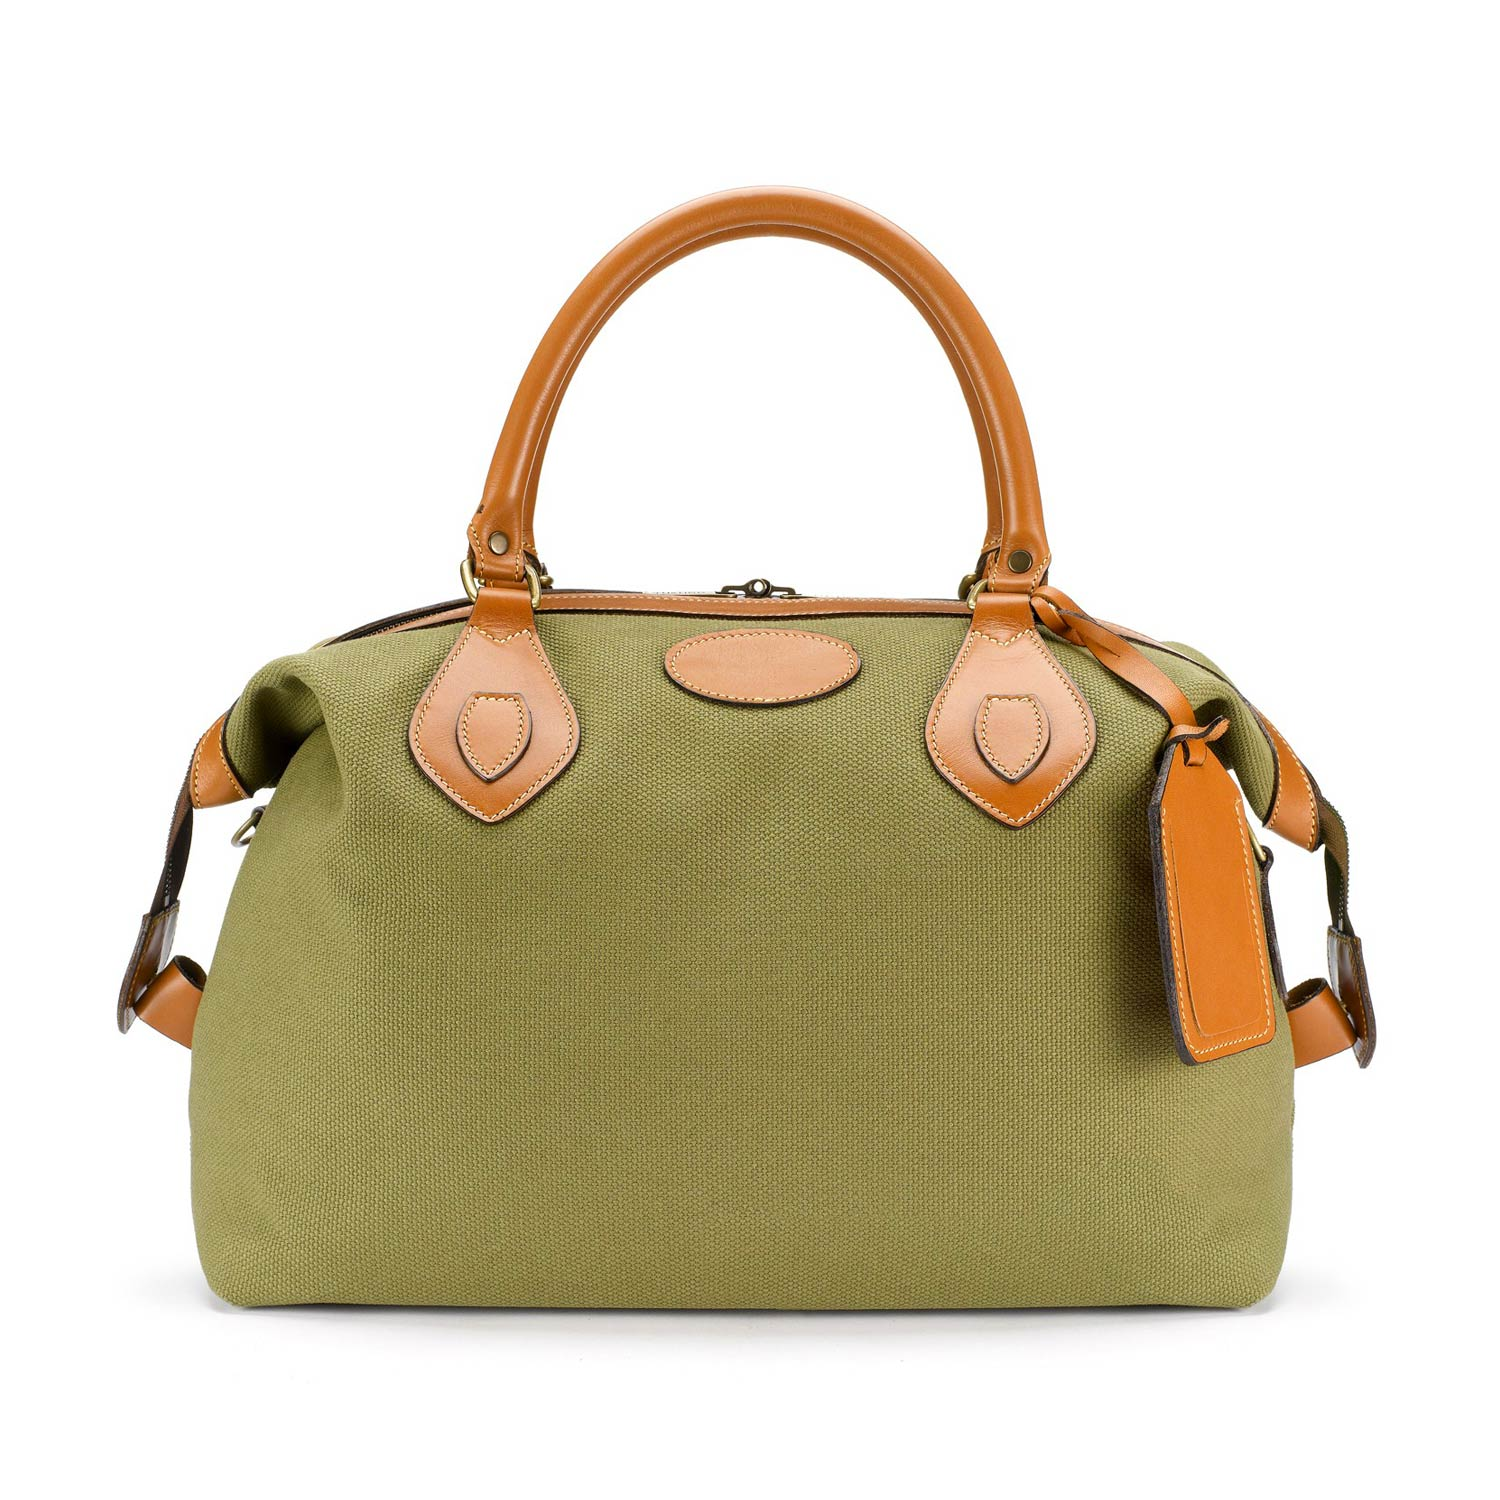 Tusting Explorer Holdall (small) in Olive Canvas and Tan Leather